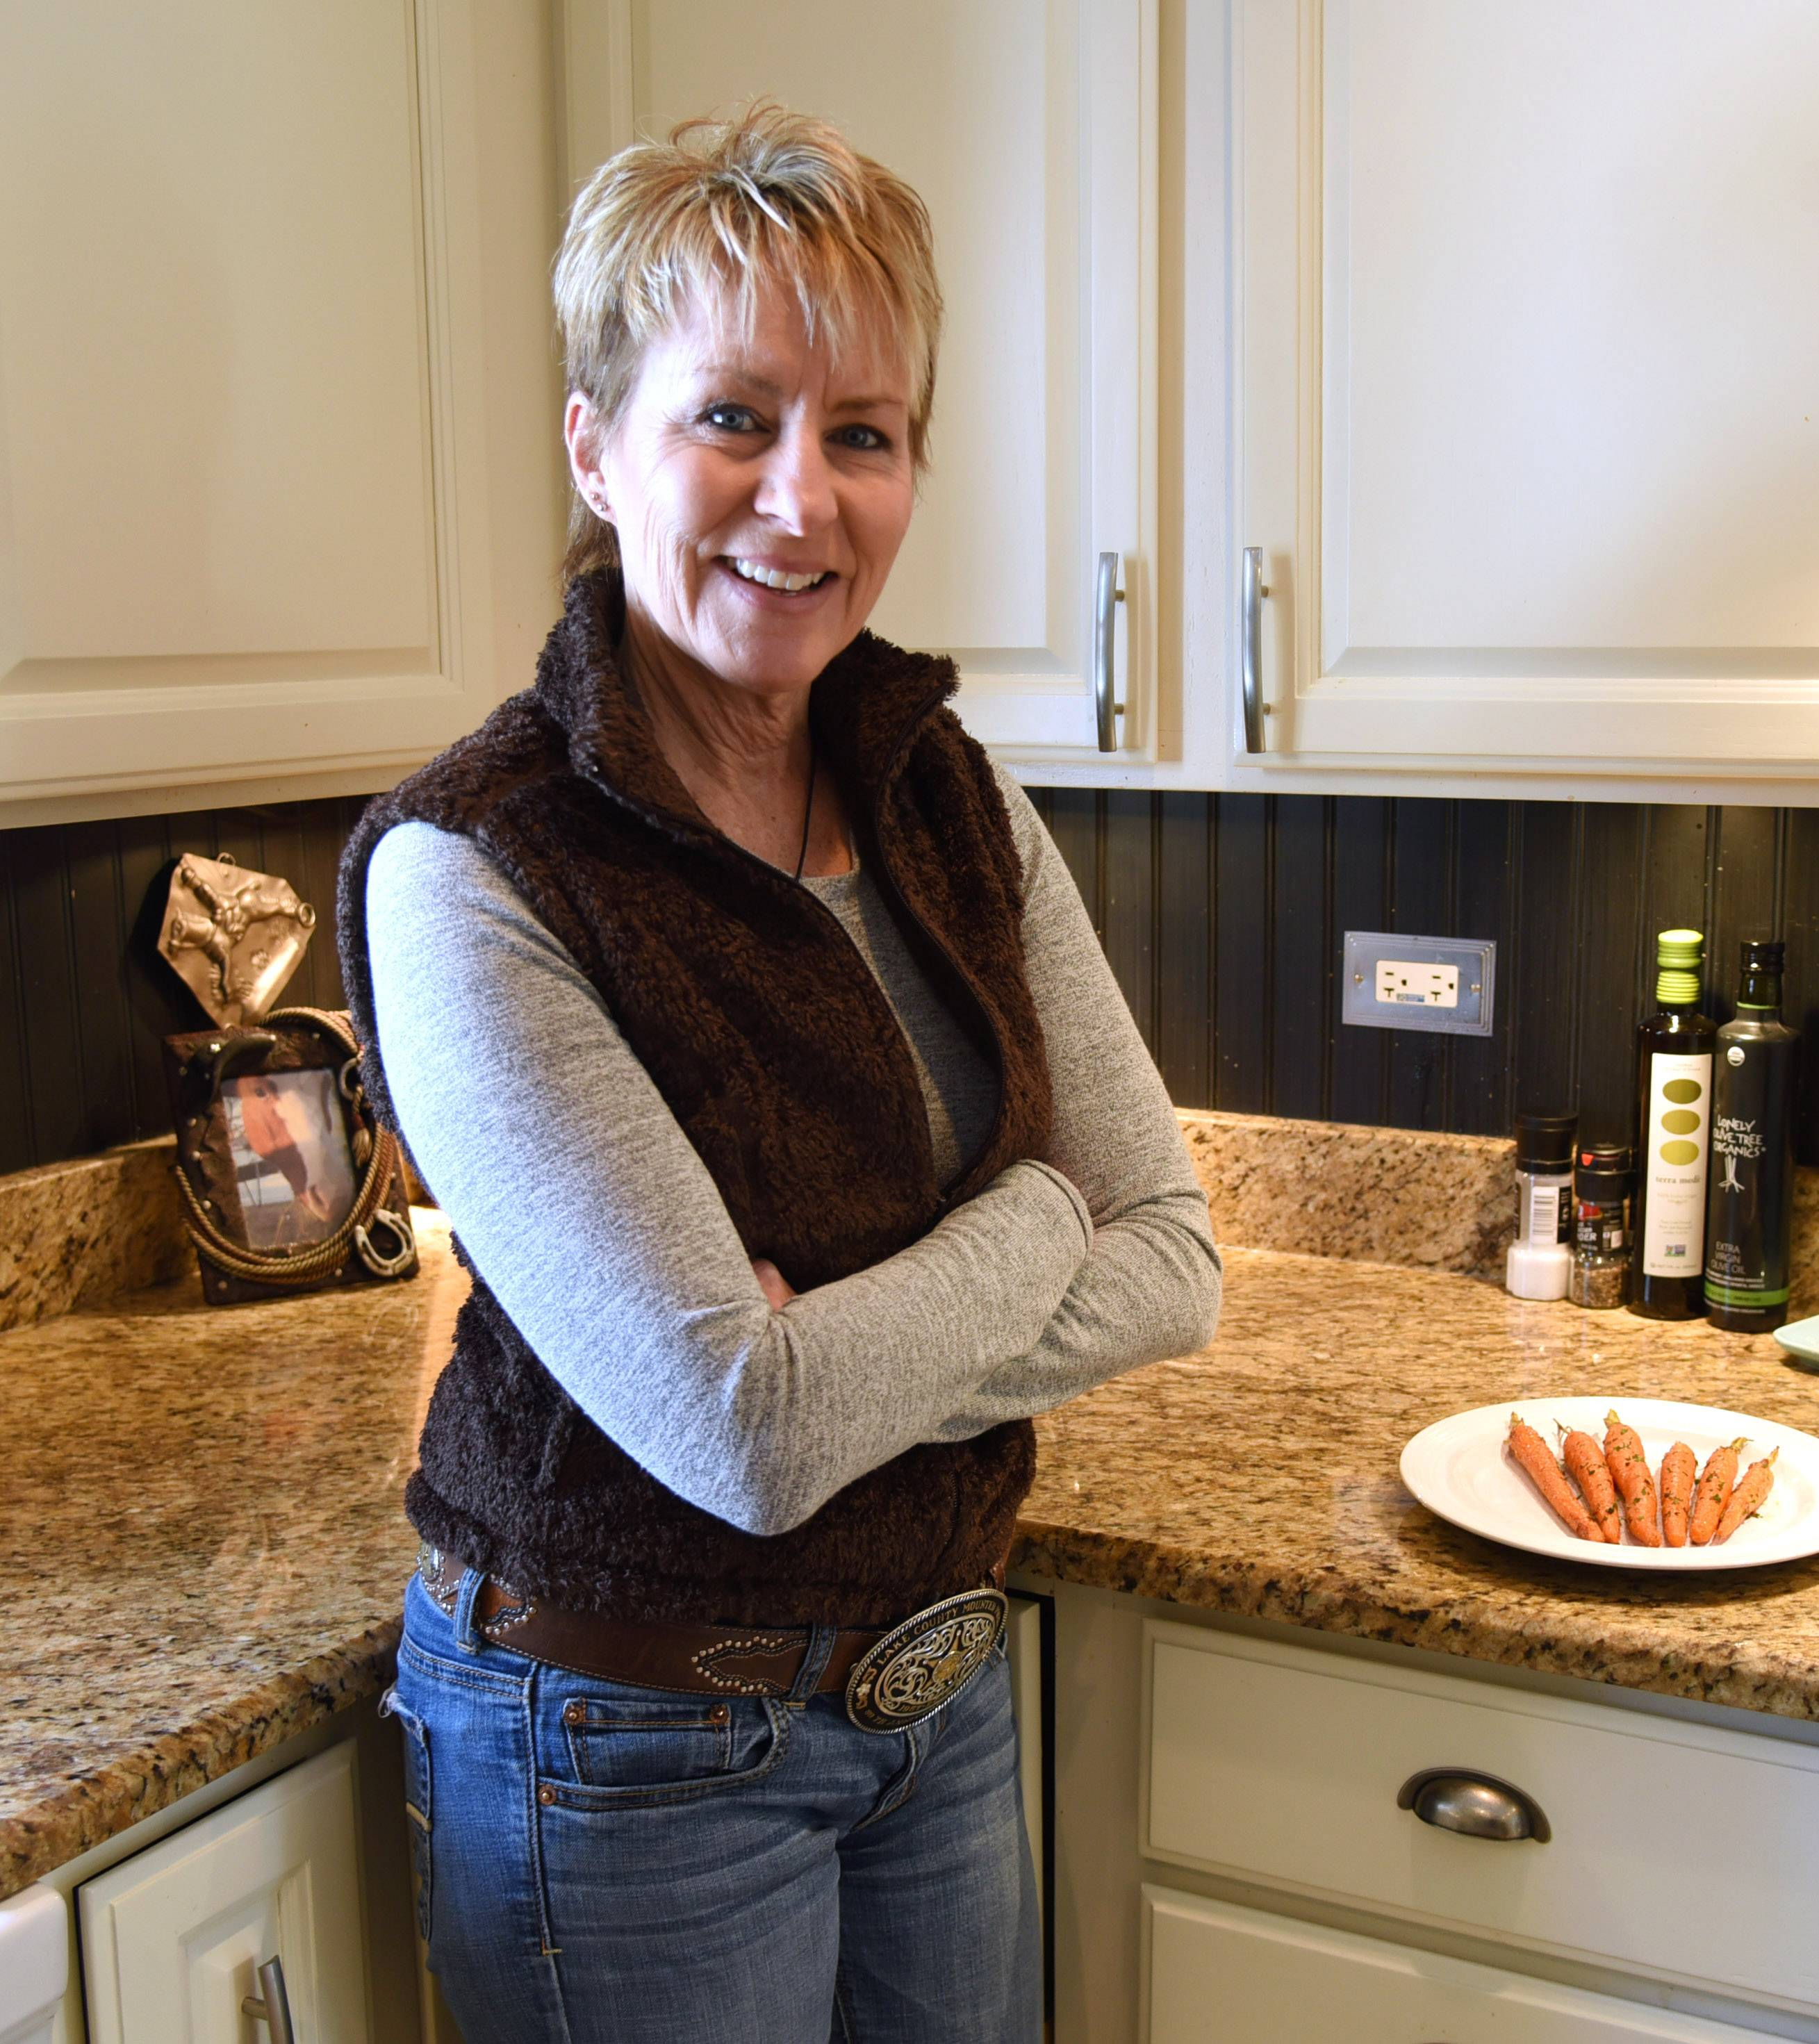 Paul Valade/pvalade@dailyherald.comCook of the Week feature on North Barrington's Pam Zeidman who made Honey Thyme Roasted Carrots.